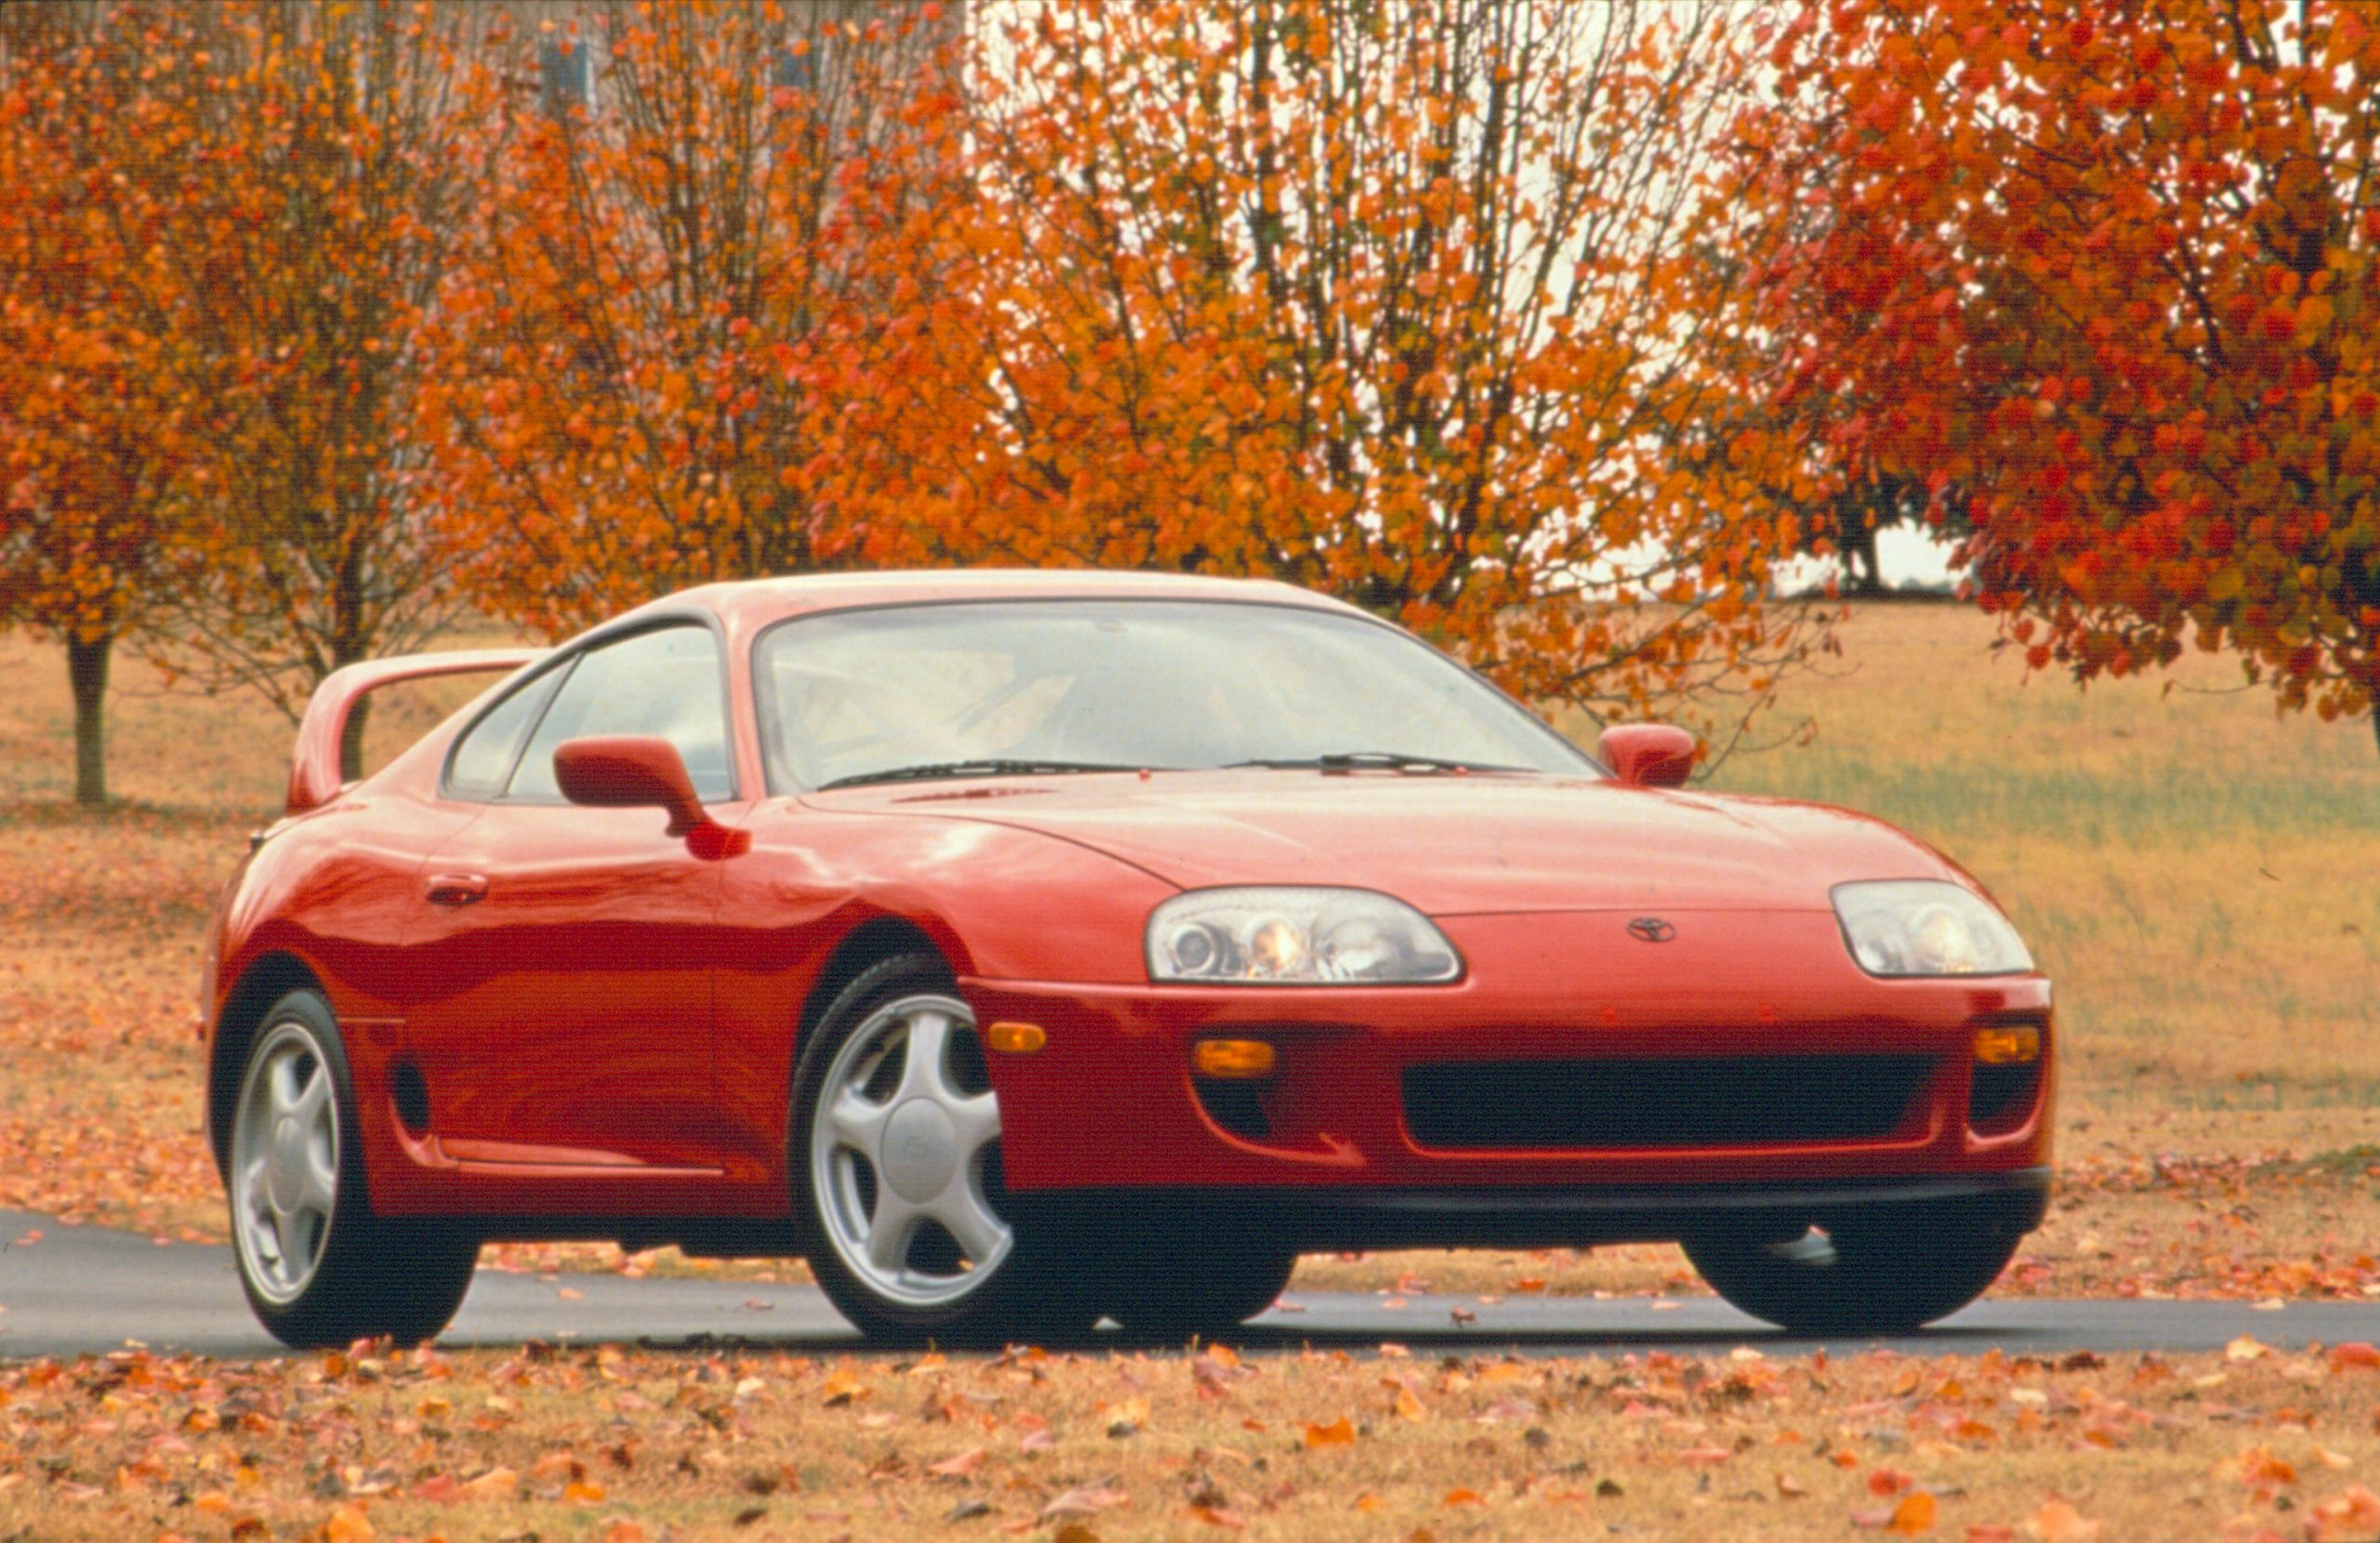 Toyota Supra MKIV front red